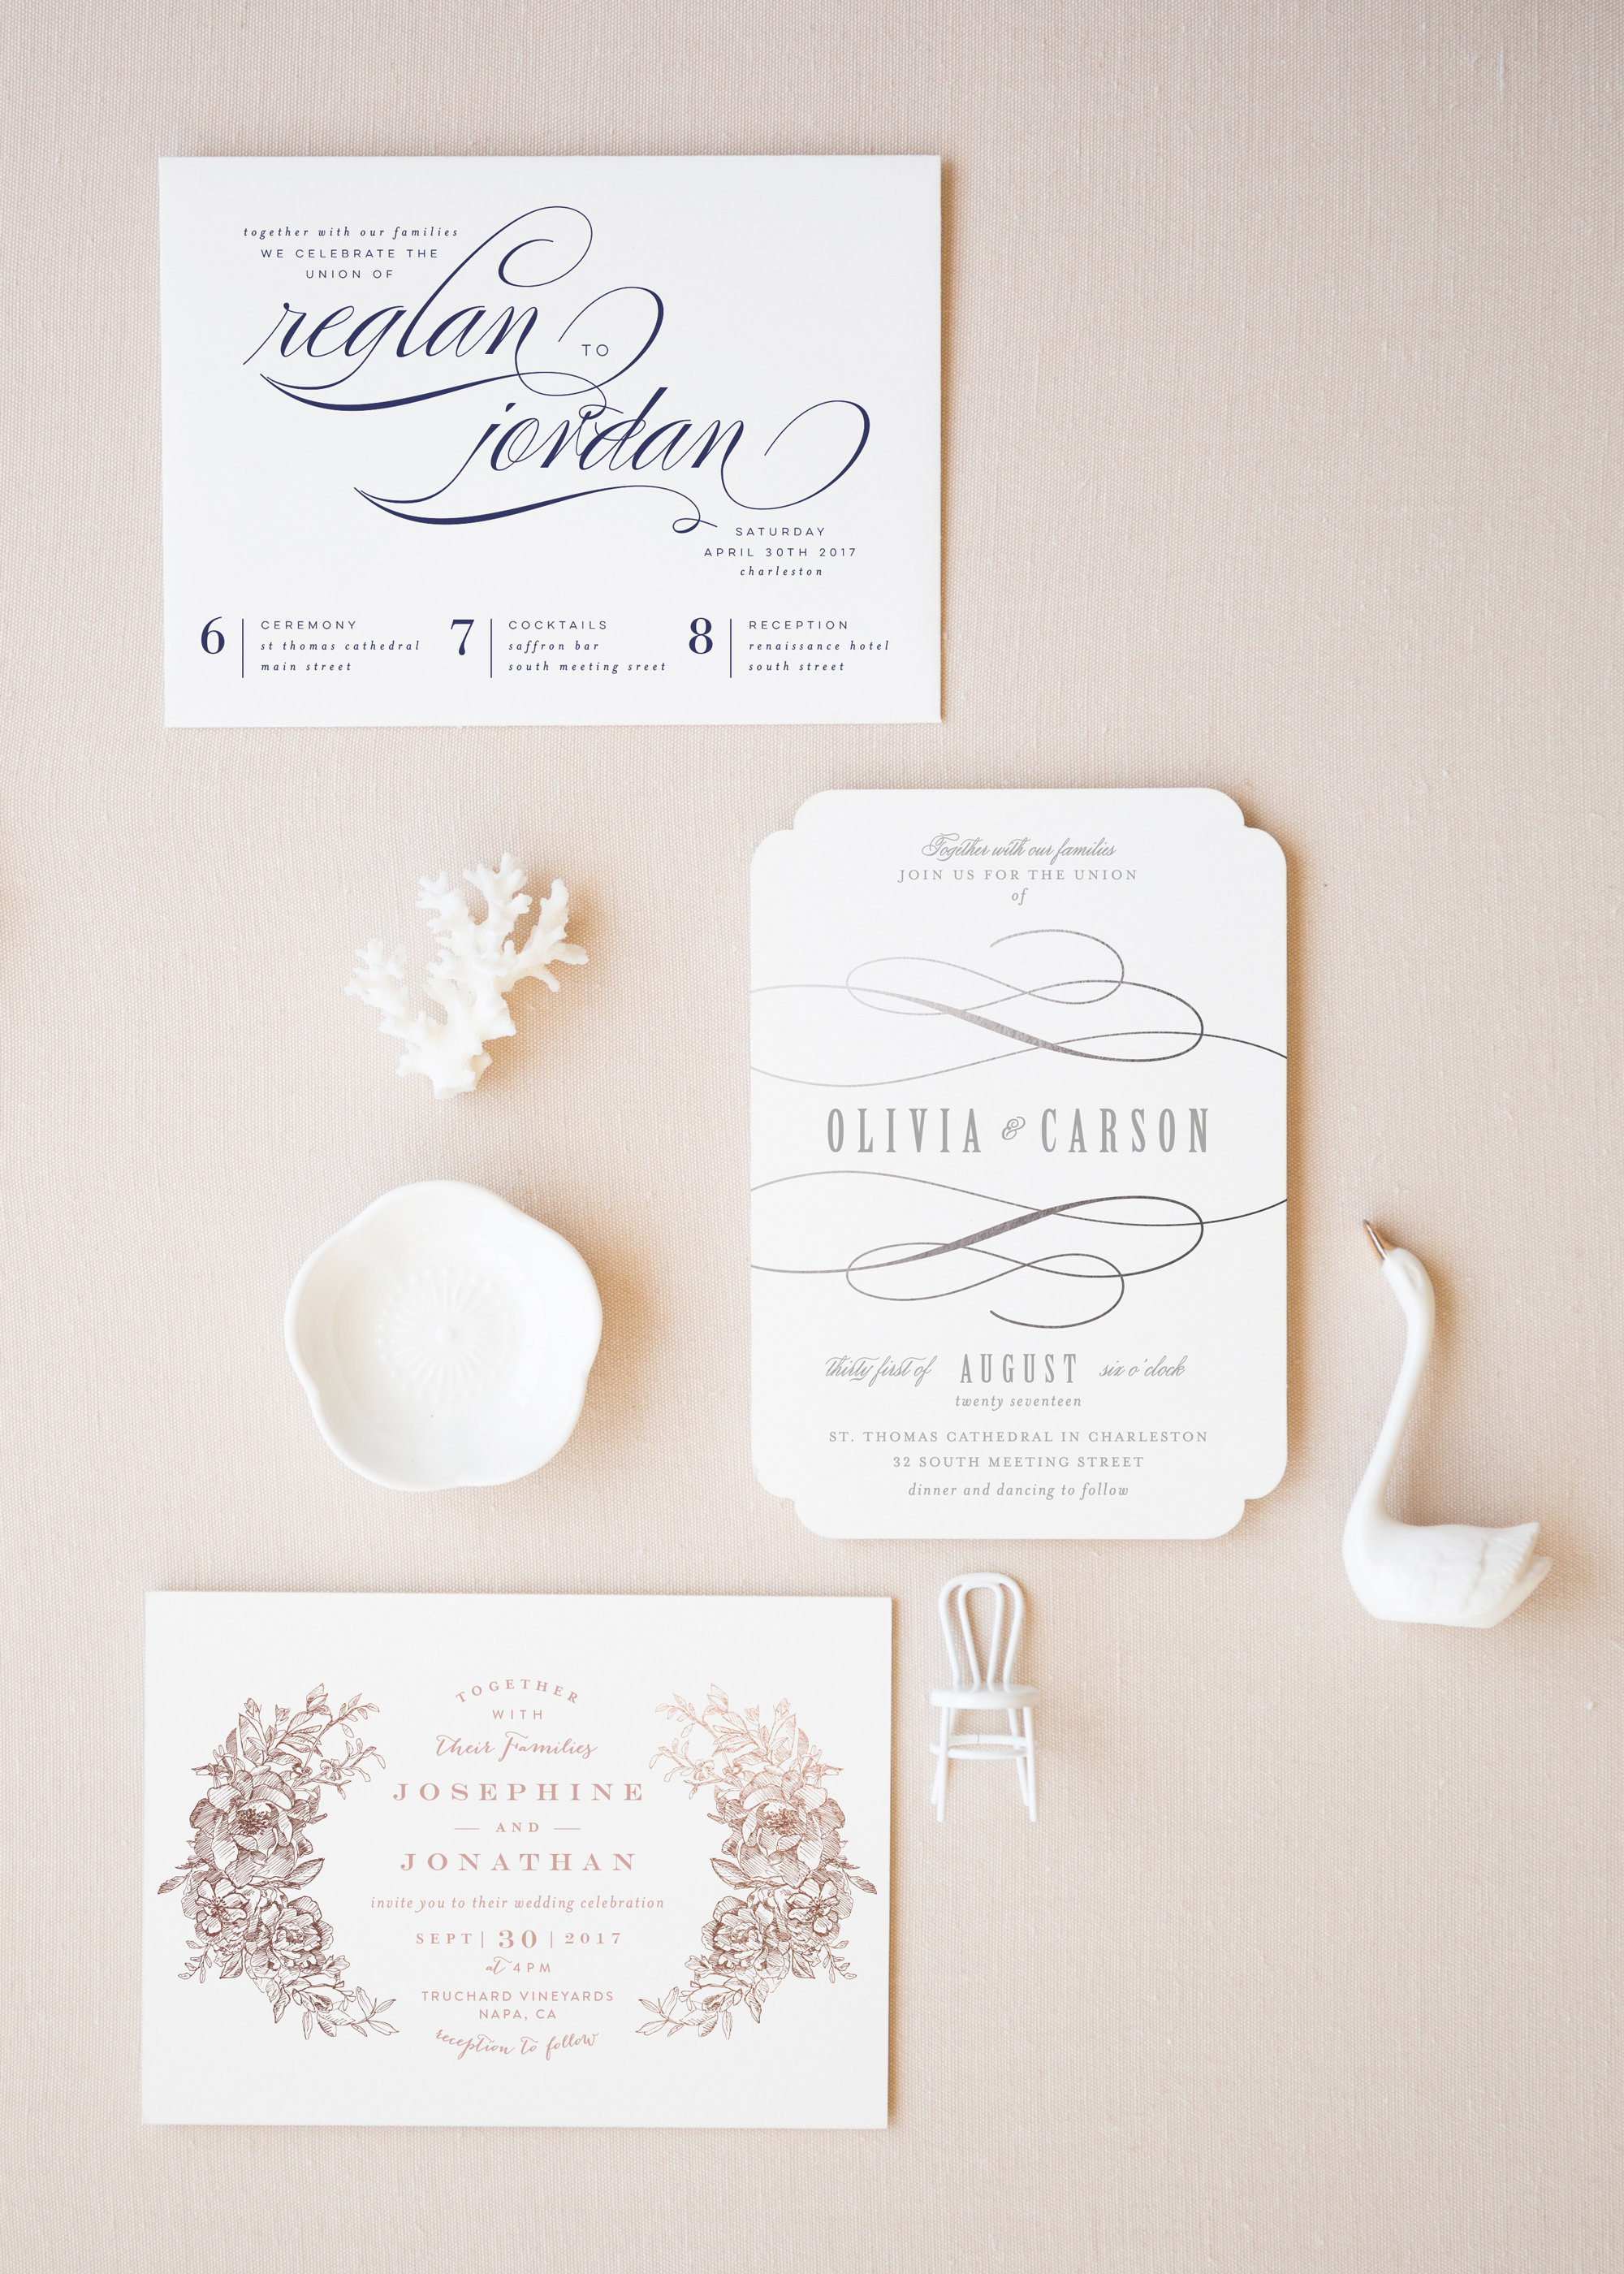 Wedding invitation card in malayalam picture ideas references wedding invitation card in malayalam wedding invitation card in malayalam wedding invitation card in malayalam wedding stopboris Choice Image